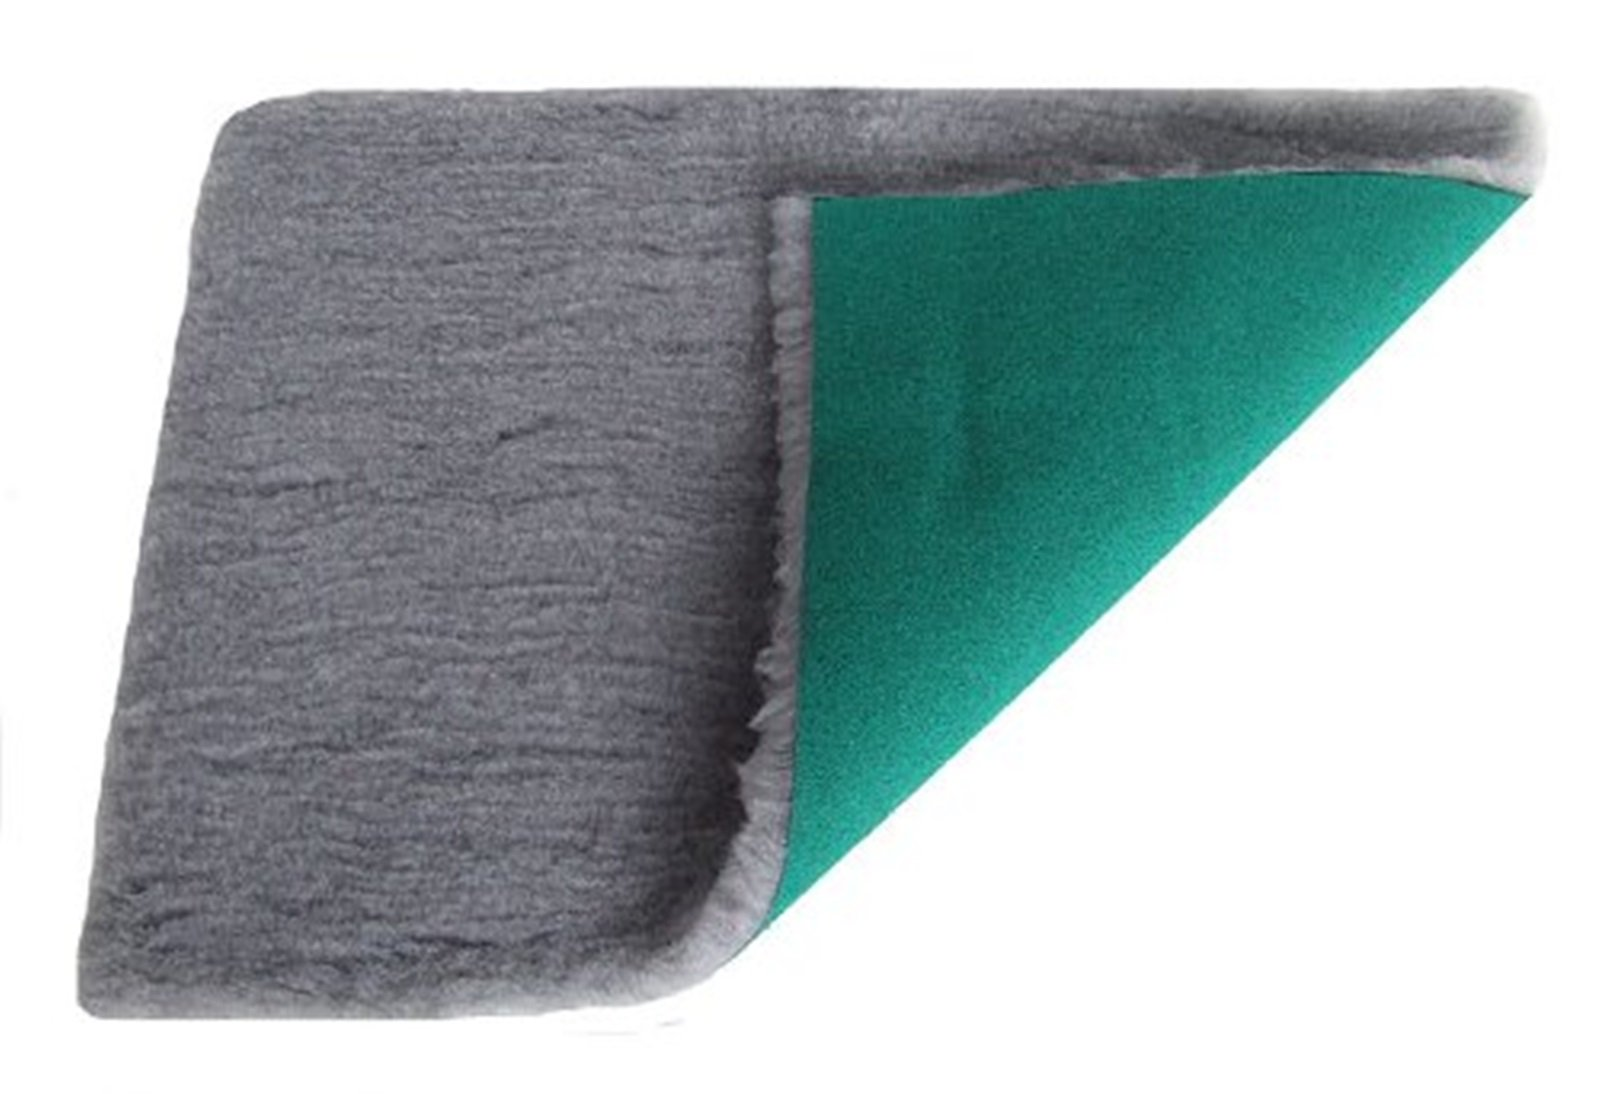 PnH Veterinary Bedding ® – Vet Bed Rectangle 76cm x 50cm – Grey – READY TO USE, SELVAGE EDGE REMOVED.